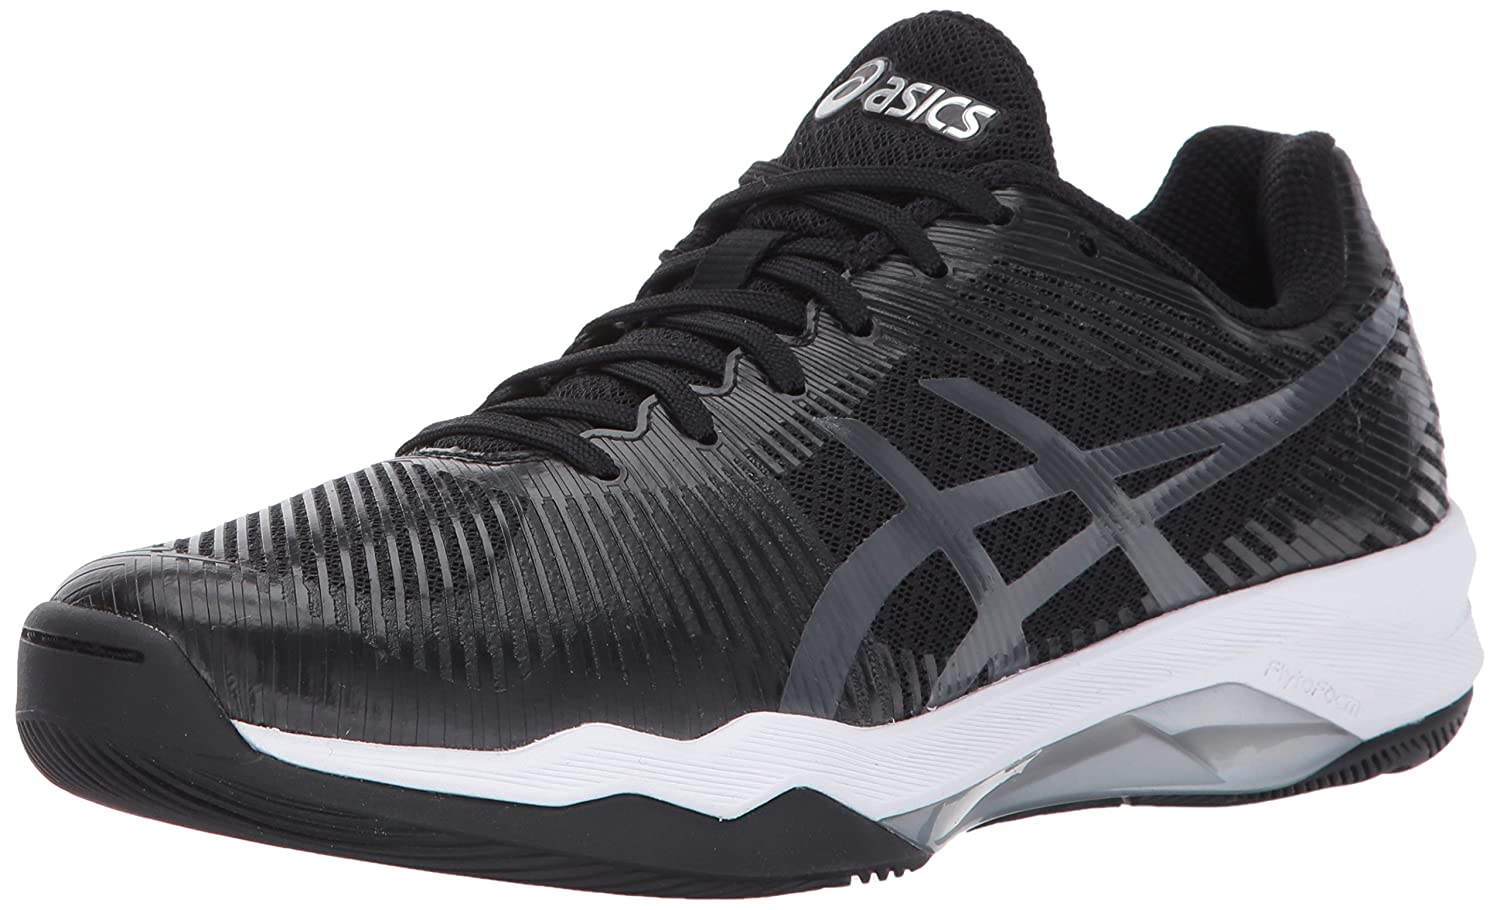 ASICS Women's Volley Elite FF Volleyball Shoe B01MXEXEHR 10.5 B(M) US|Black/Dark Grey/White